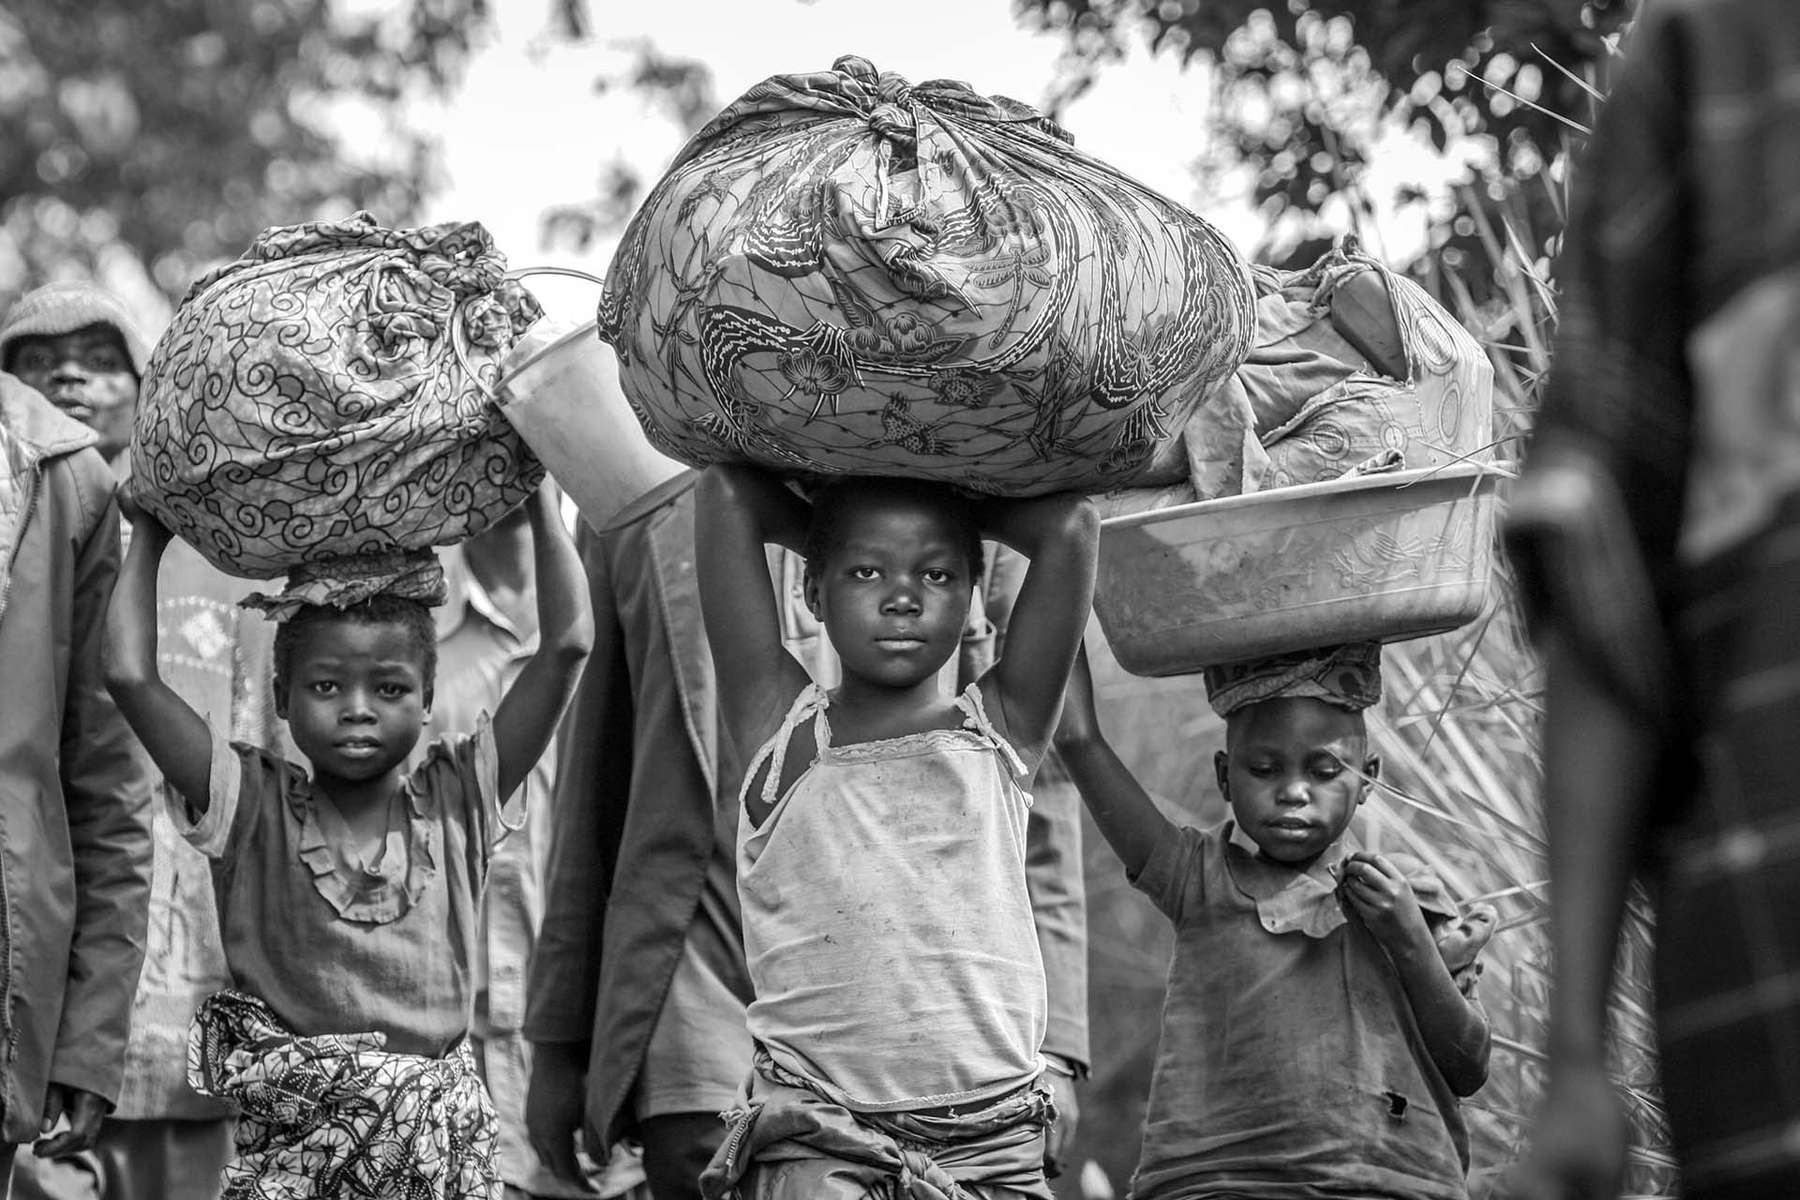 With all they can carry, internally displaced Congolese make a long journey to find a safe haven near the village of Gety.